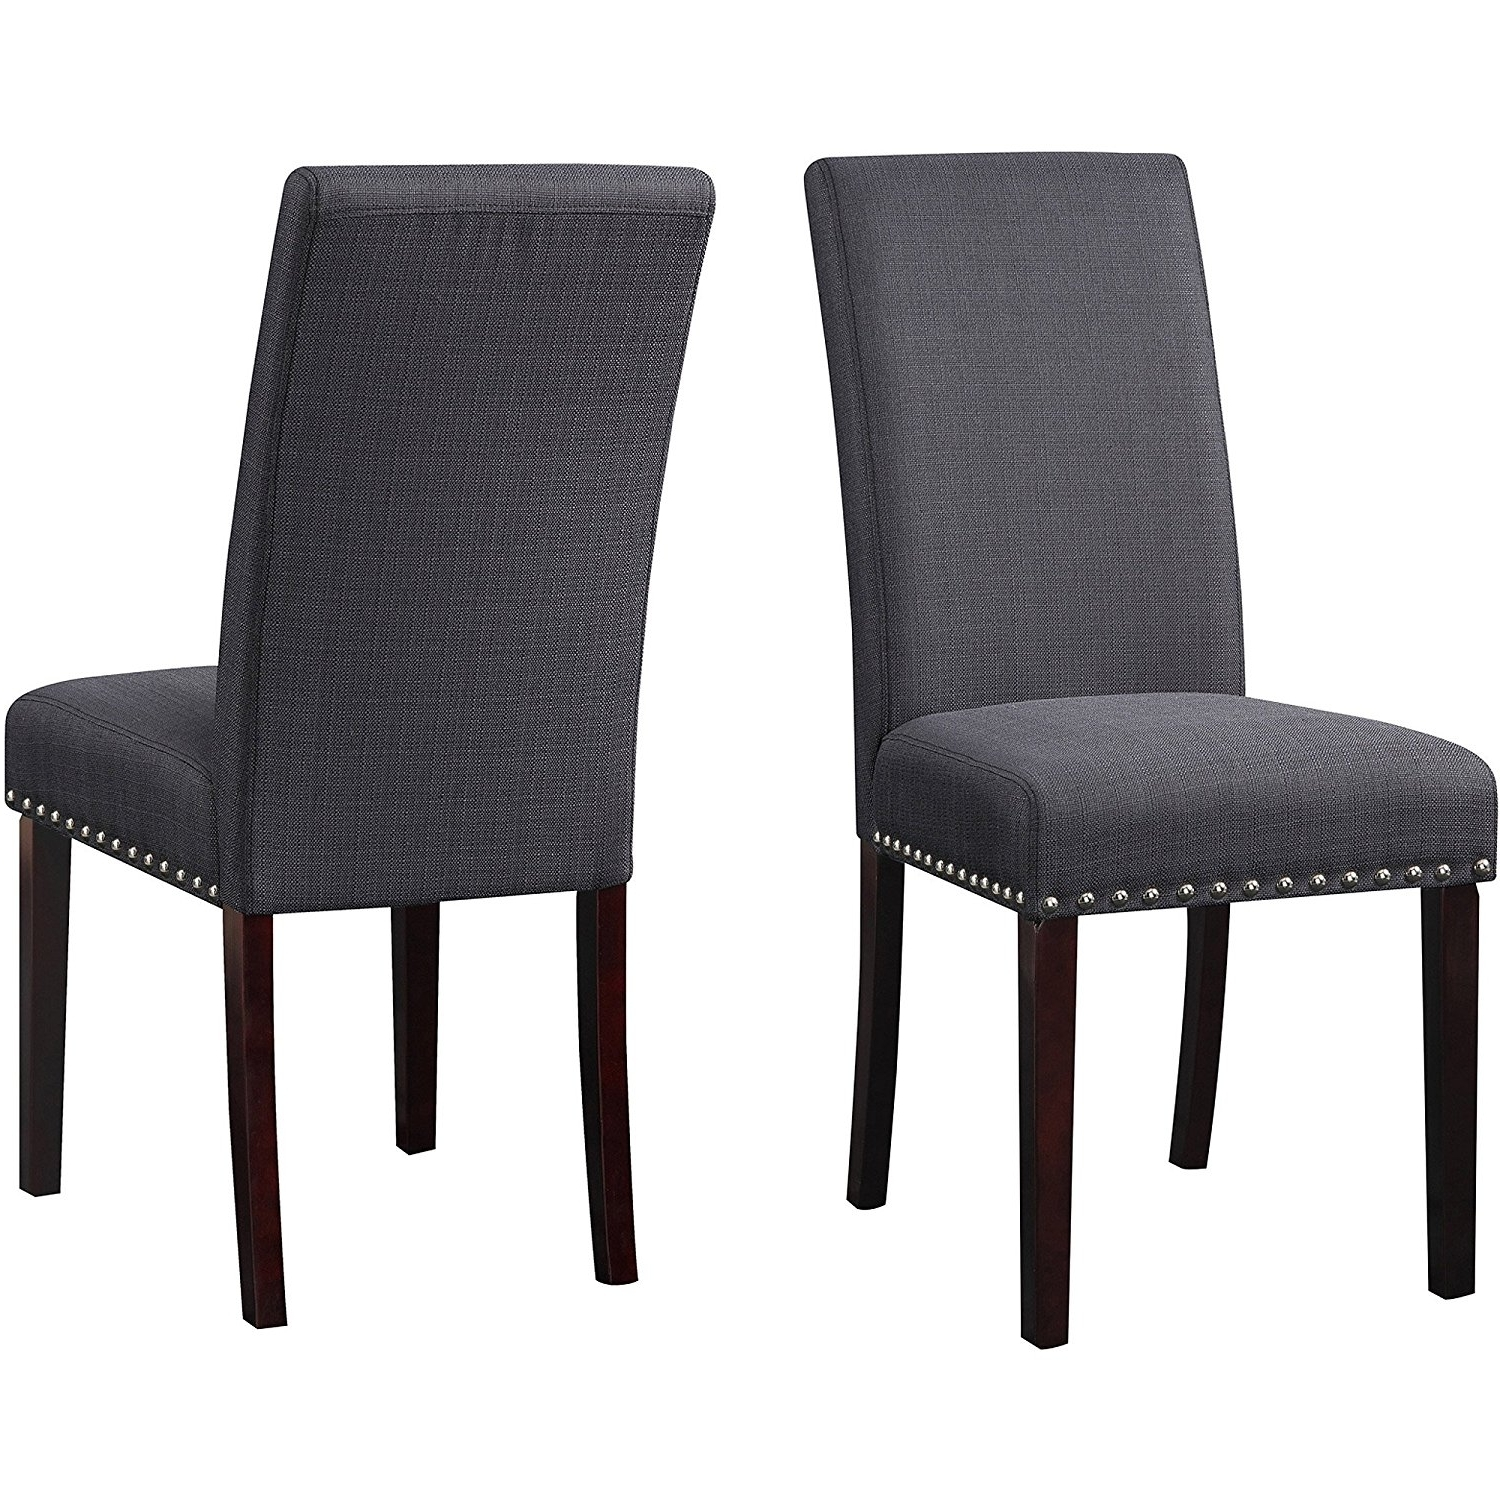 Famous Fabric Covered Dining Chairs Regarding Bistro Dining Chairs (Set Of 2) Upholstered Fabric Parsons Side (View 14 of 25)